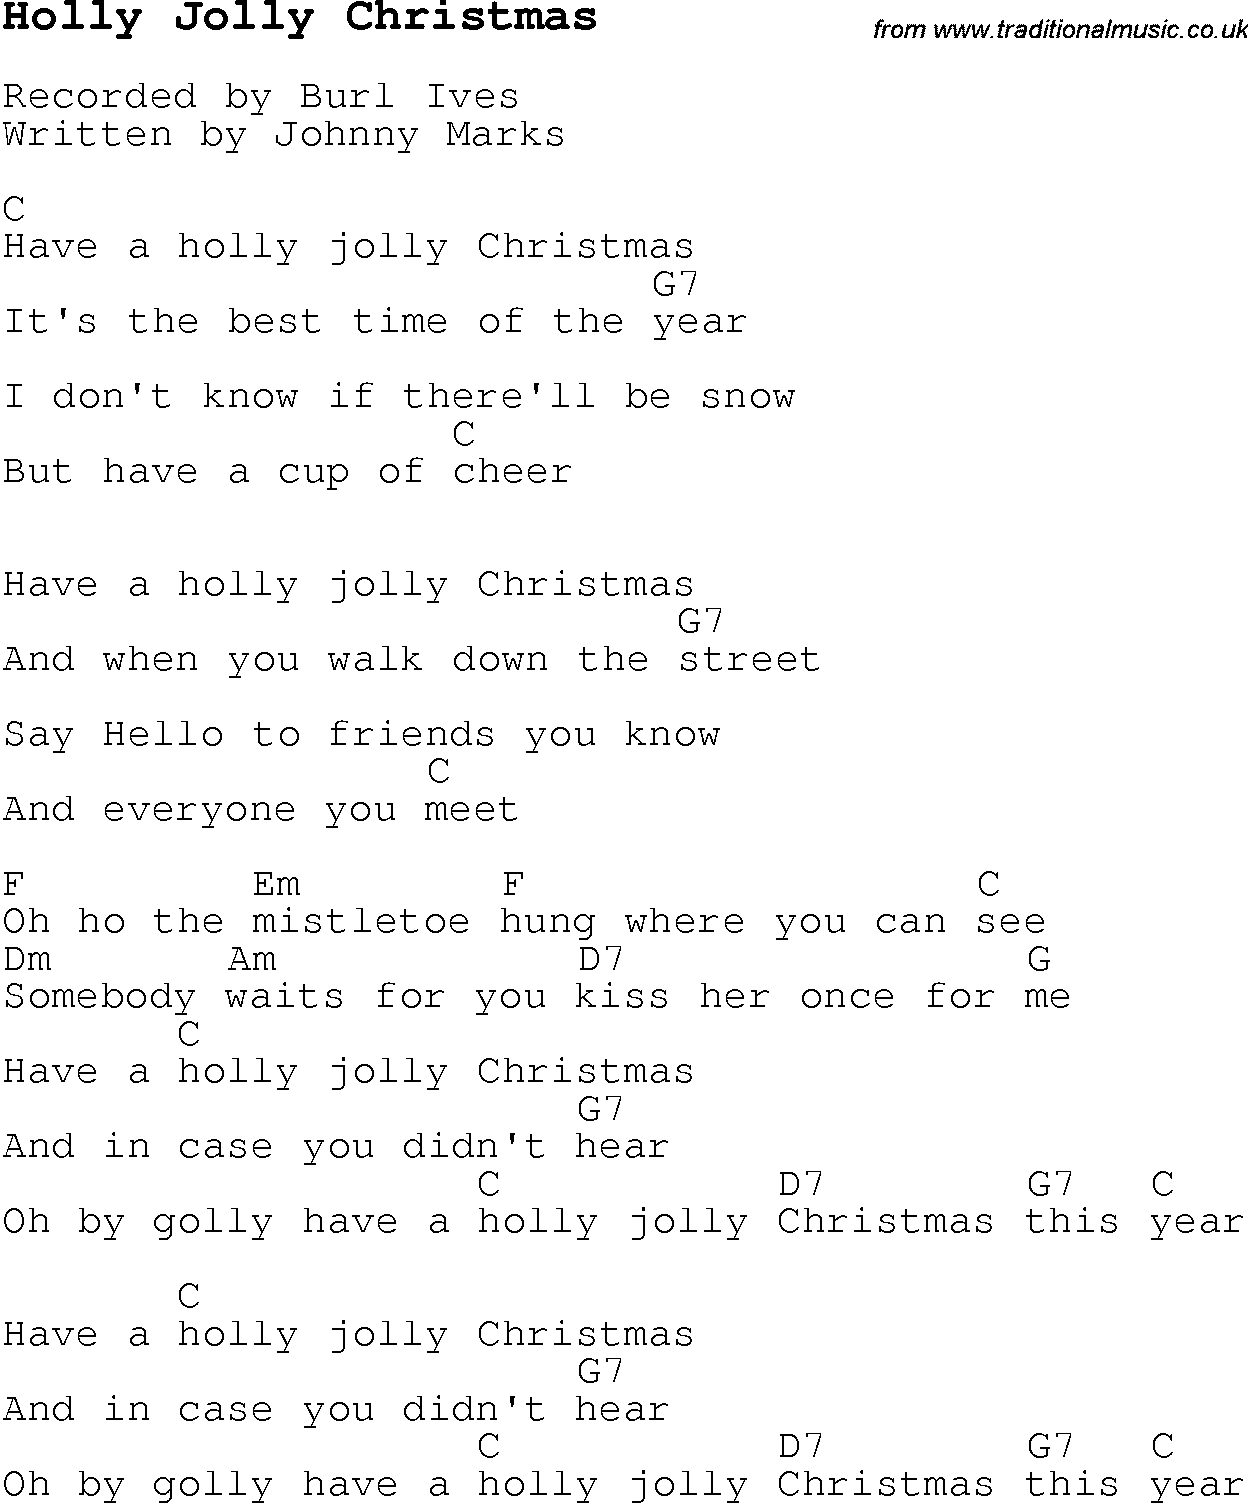 Christmas Carol/Song lyrics with chords for Holly Jolly Christmas